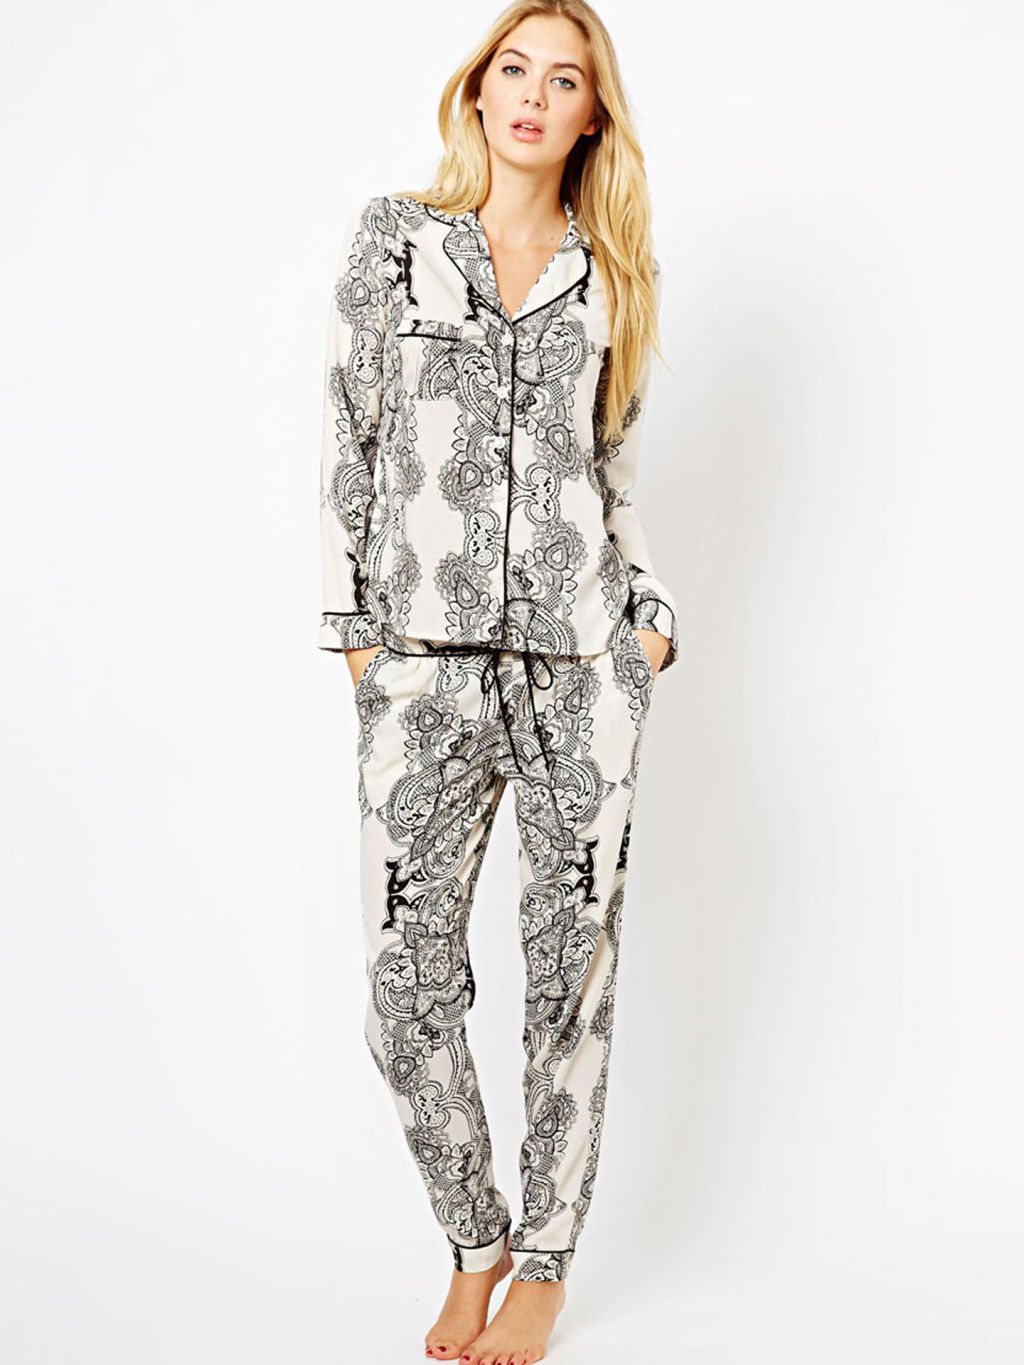 14 Cute Cozy Pajamas - Warm Pajama Sets and Pants